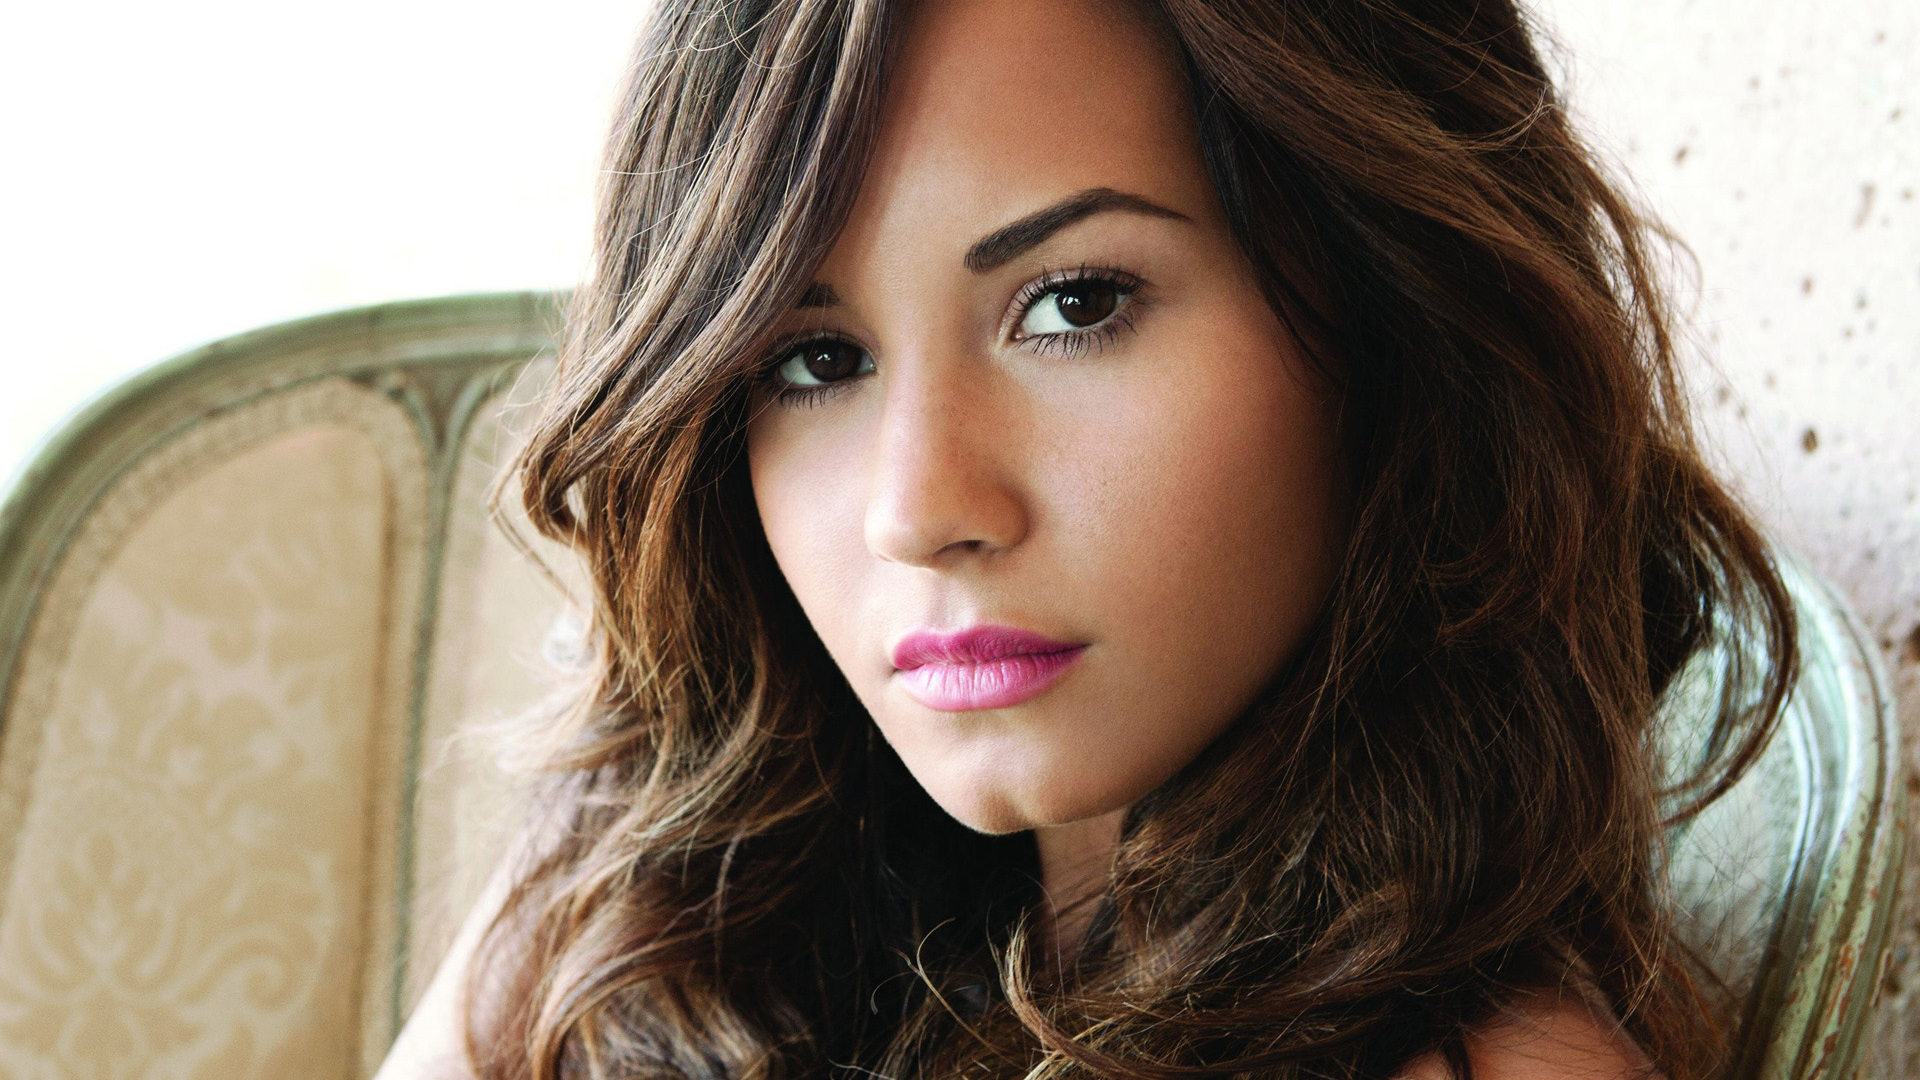 with Demi Lovato Galleries Demi Lovato Pics Demi Lovato Wallpaper HD 1920x1080